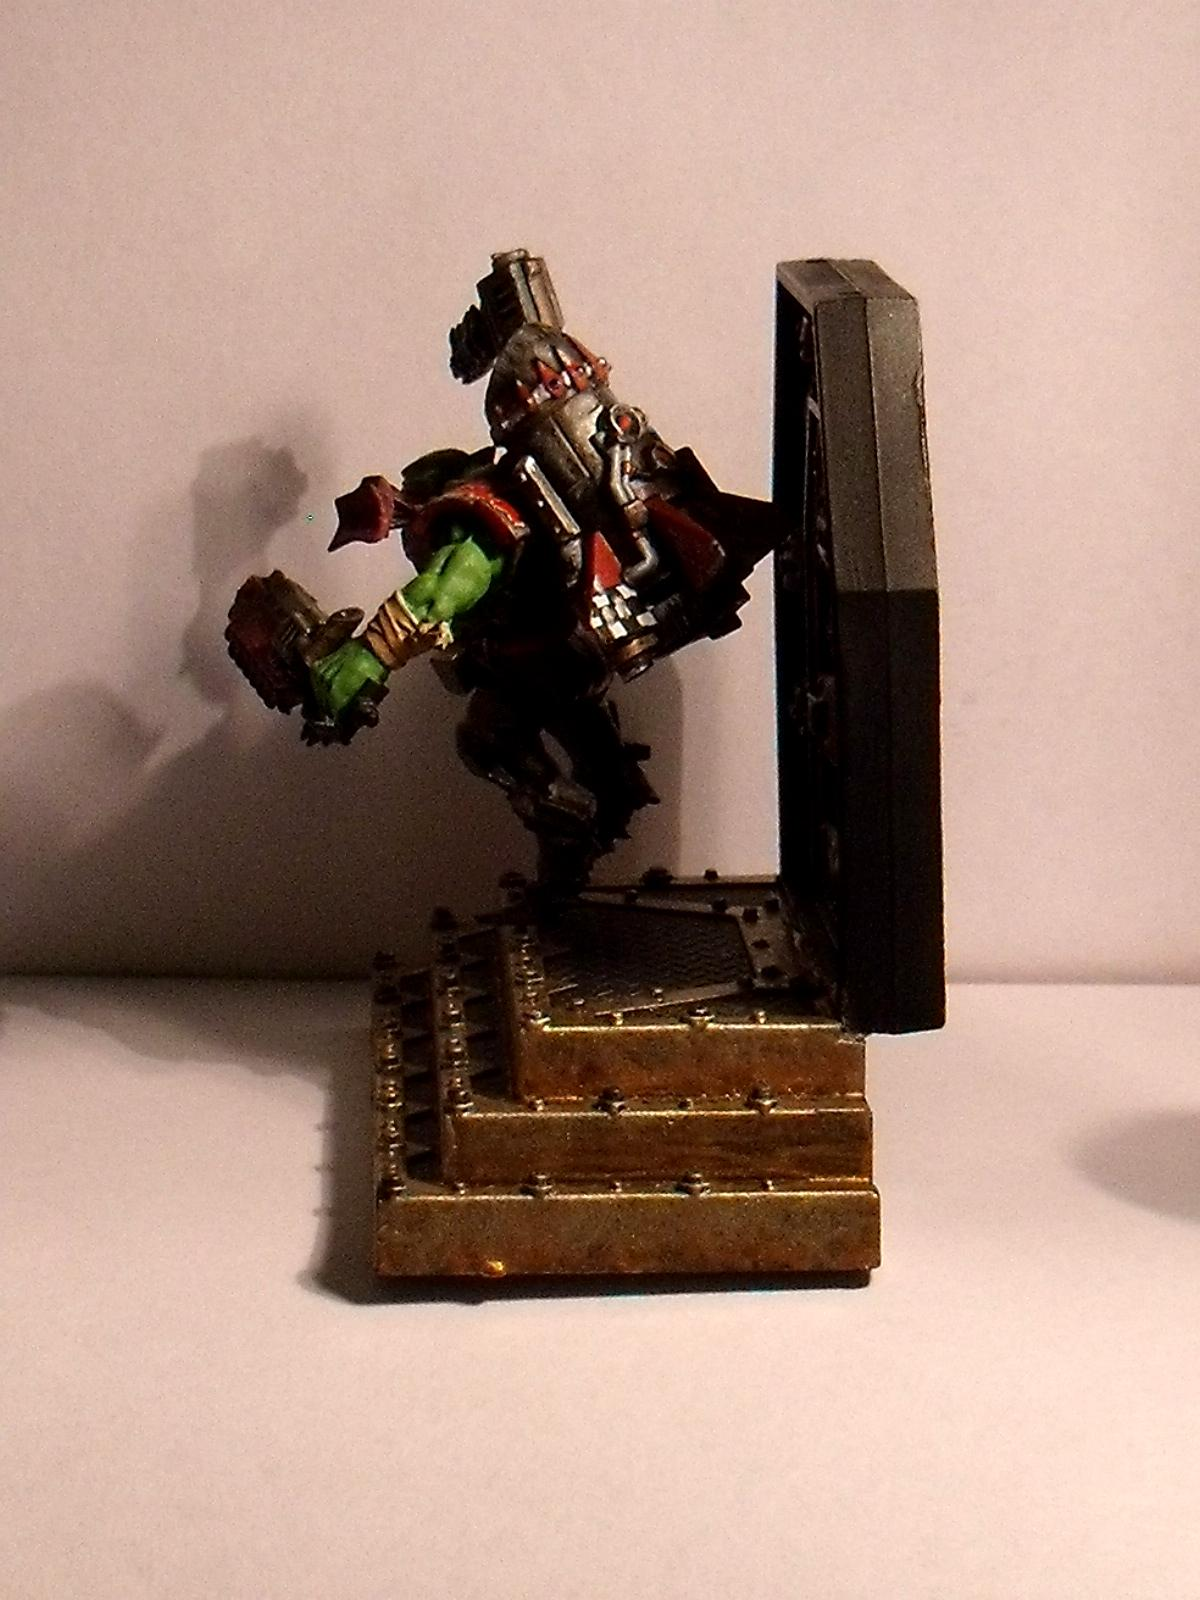 Orks, Single Projects, Stormboy, Warhammer 40,000